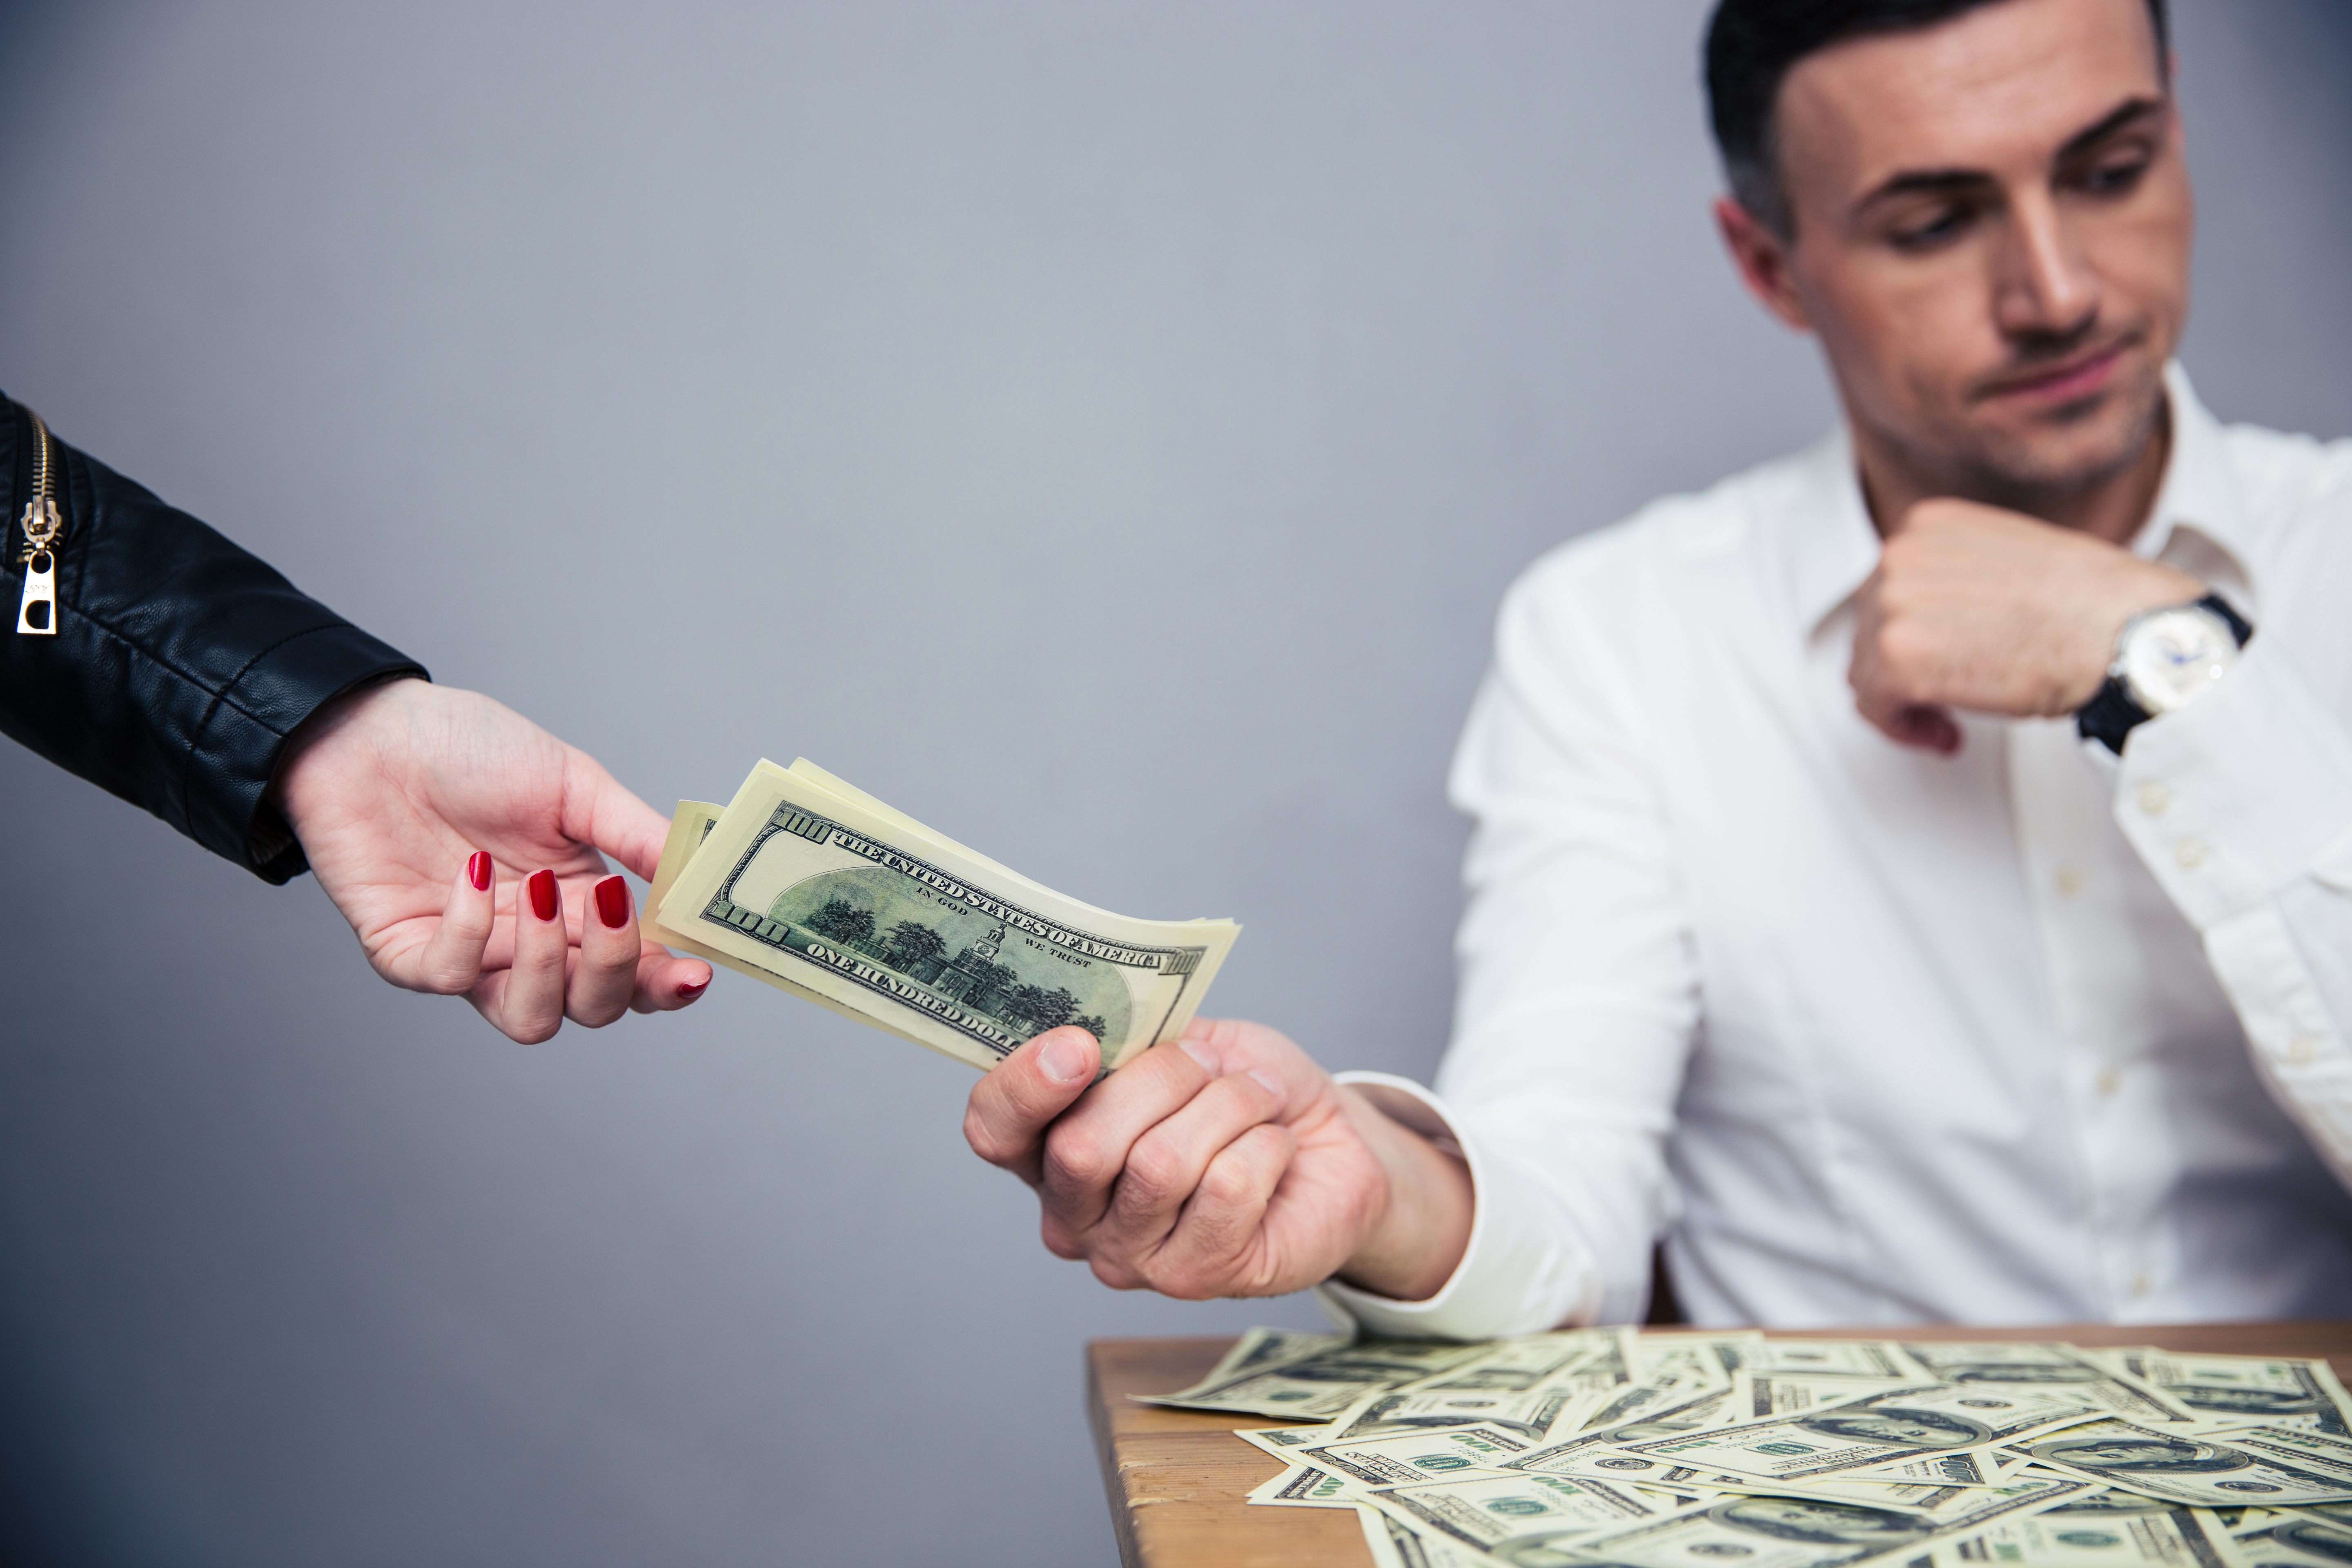 Unhappy man giving money to woman over gray background